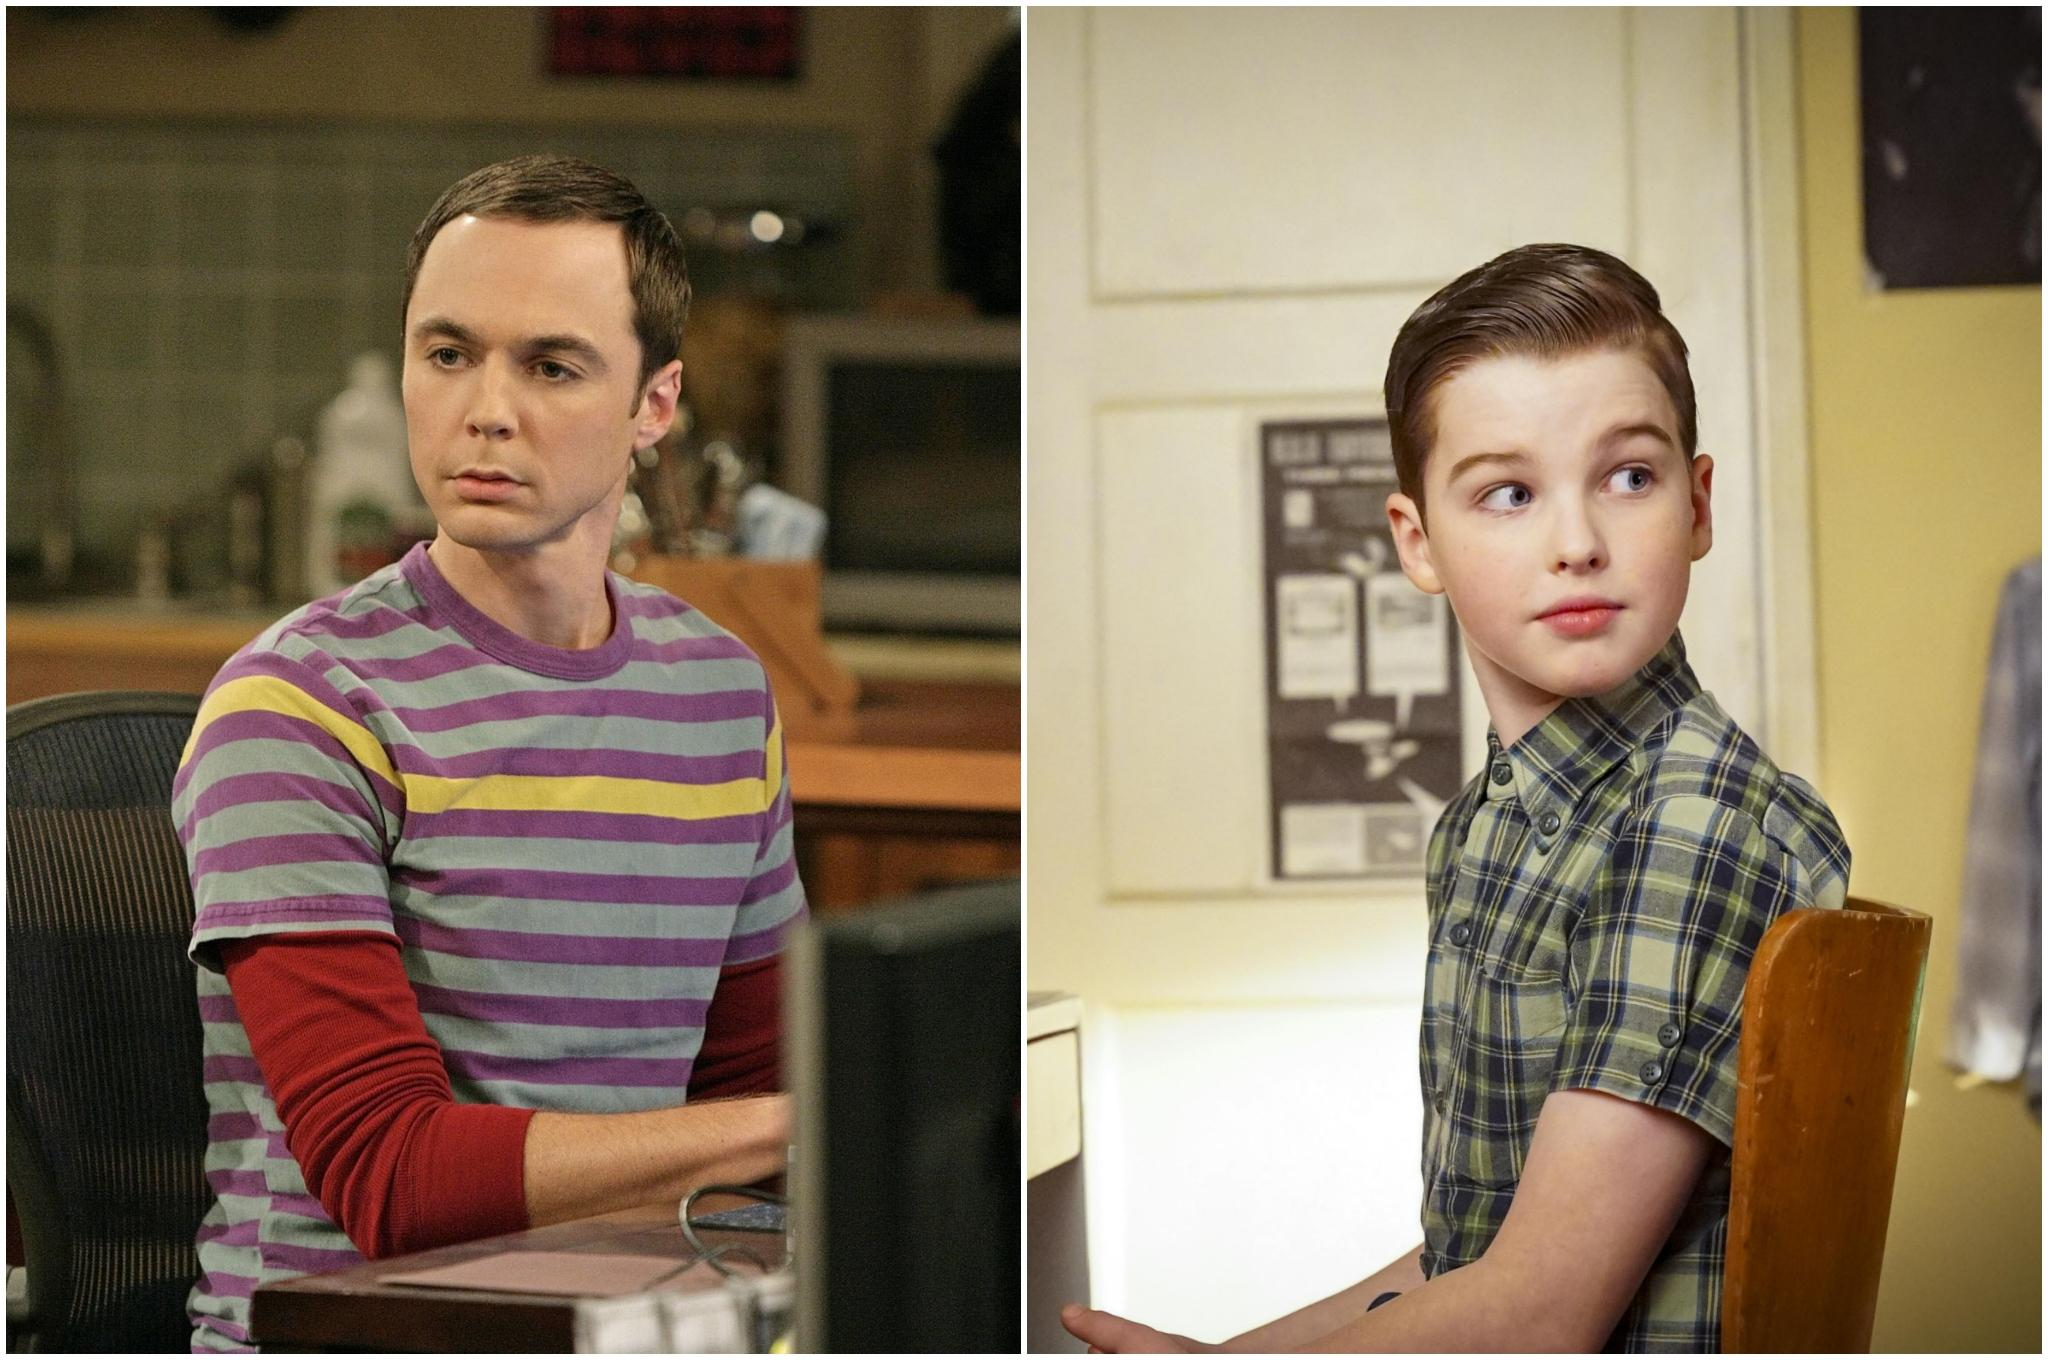 Sheldon Cooper had to be less 'annoying' in The Big Bang Theory spin-off